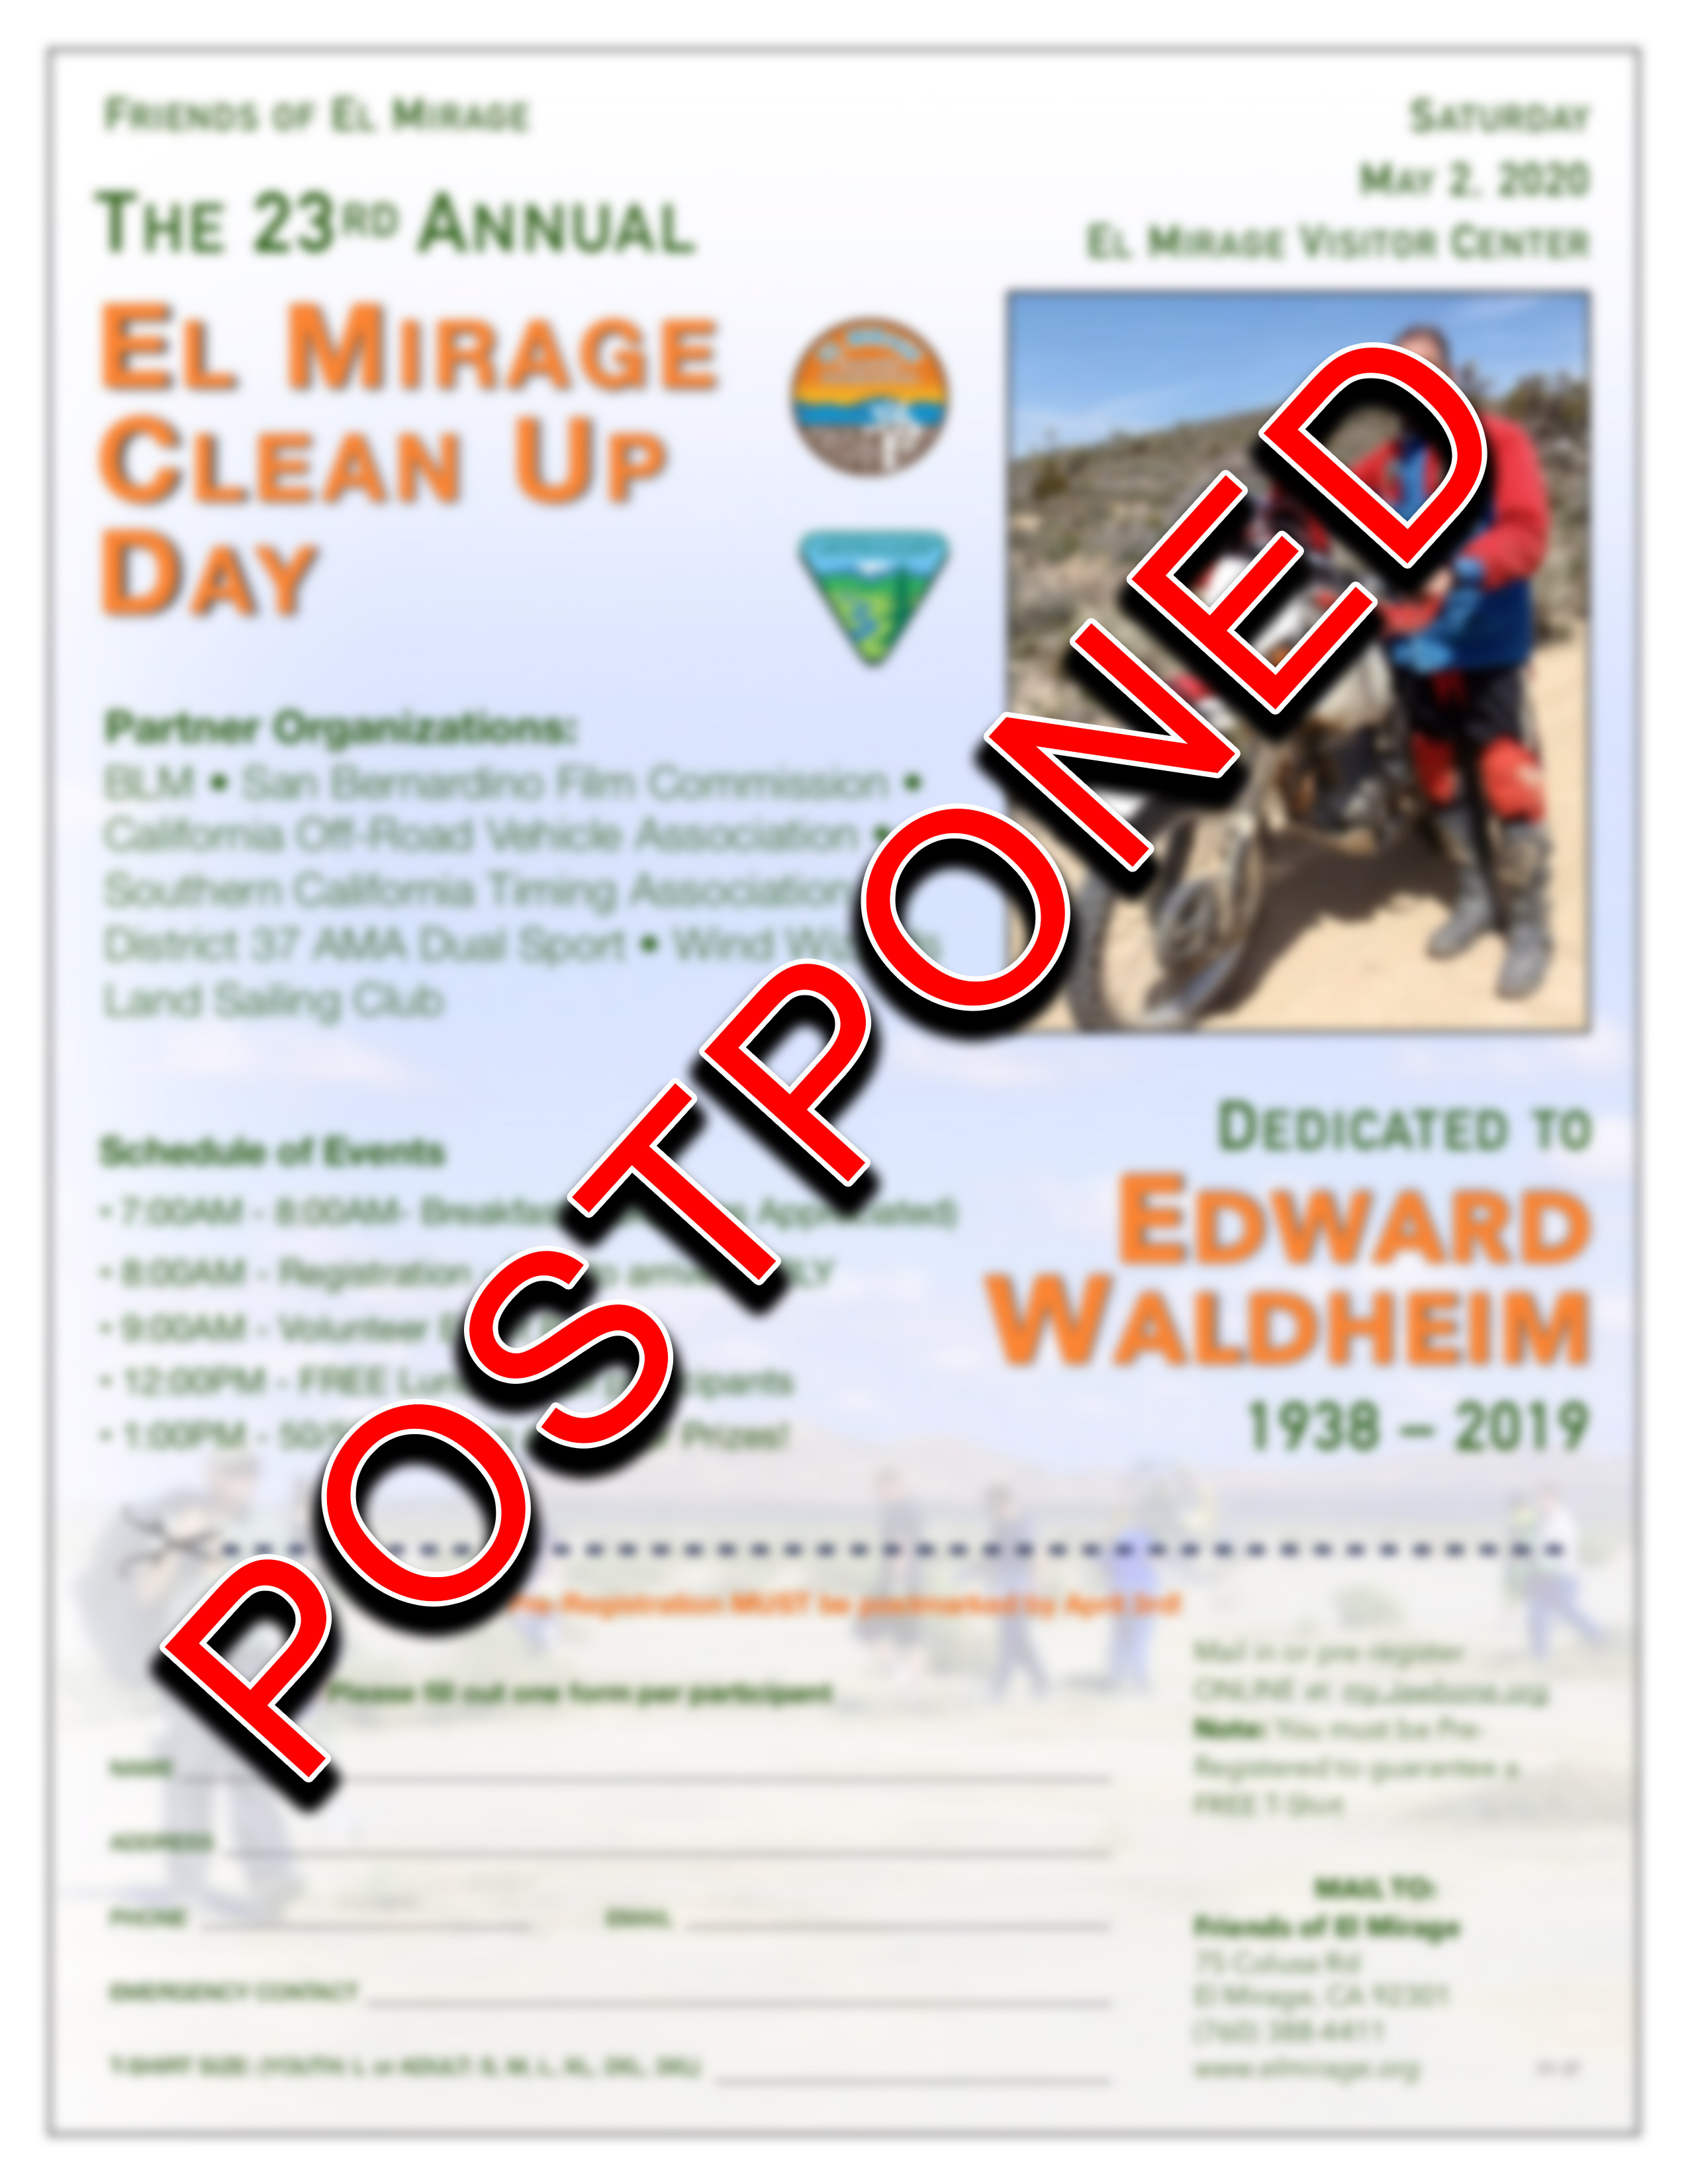 This image is the Spring Annual El Mirage Day registration/flyer that will be on May 2, 2020.